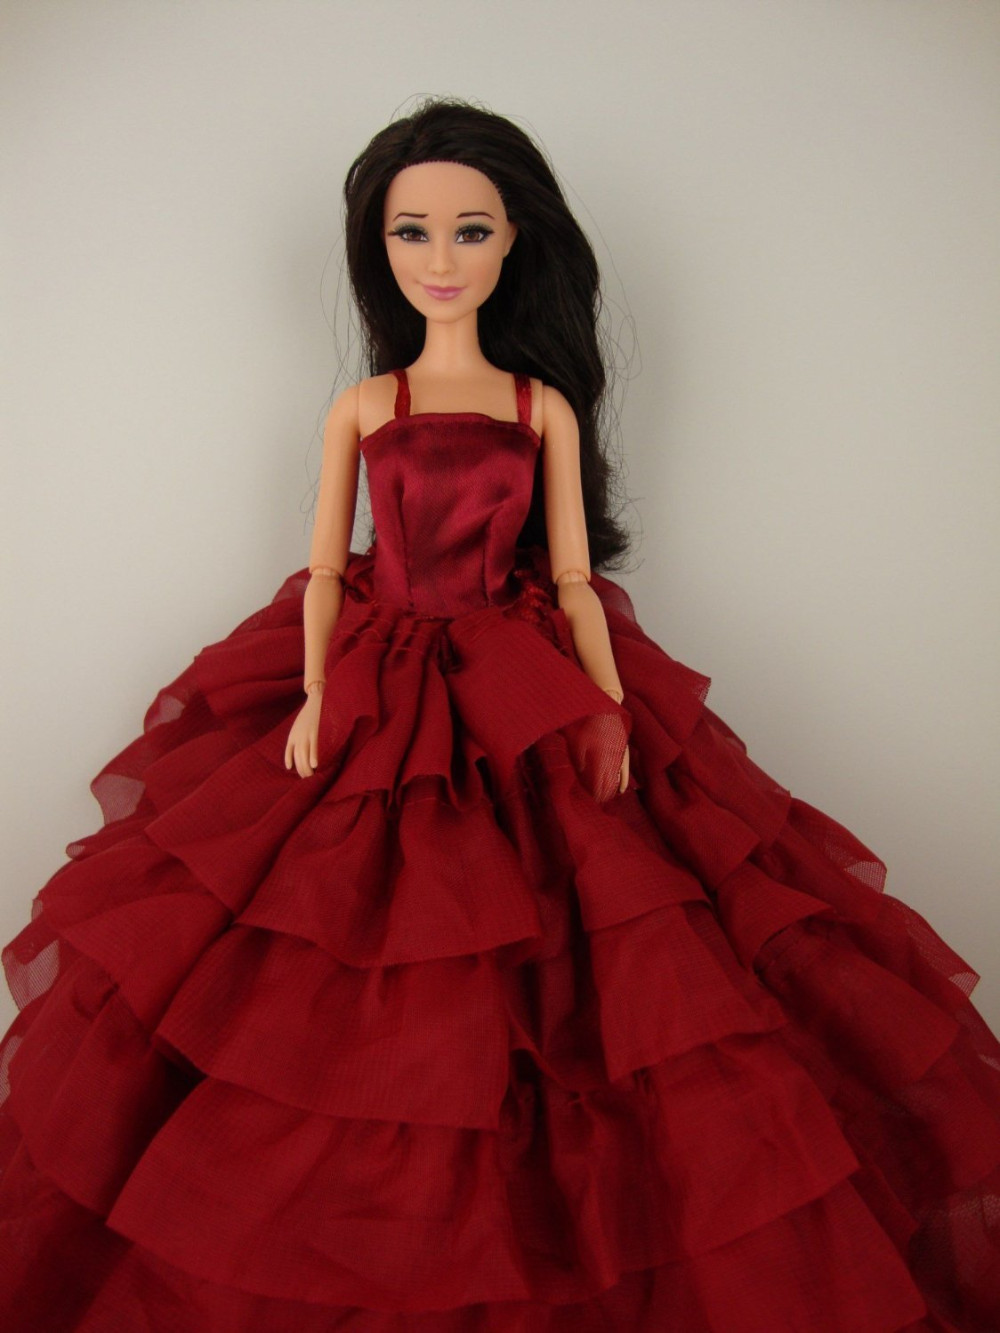 Deep Pink Robe with Layers of Ruffle Particulars Made to Match the Barbie Doll Nice Kids Reward